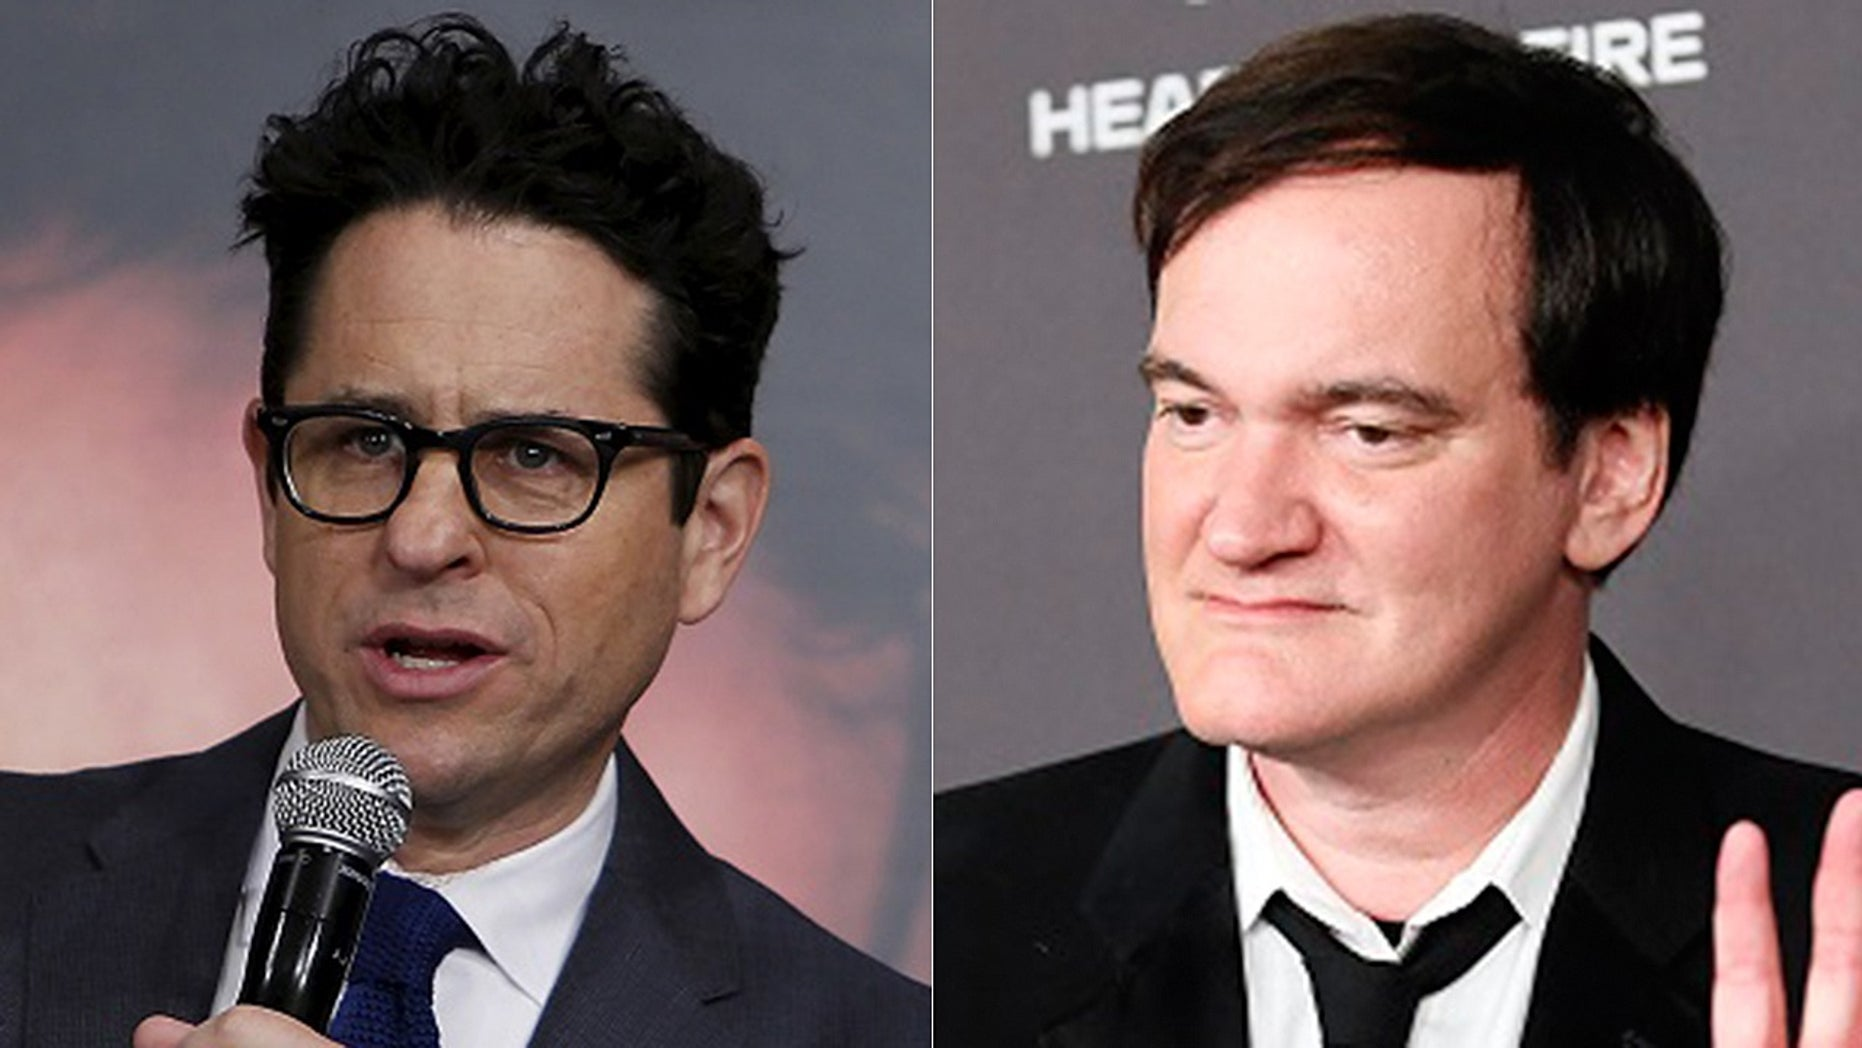 """Quentin Tarantino reportedly came up with an original idea for a new """"Star Trek"""" and J.J. Abrams has set up a writing room for it."""